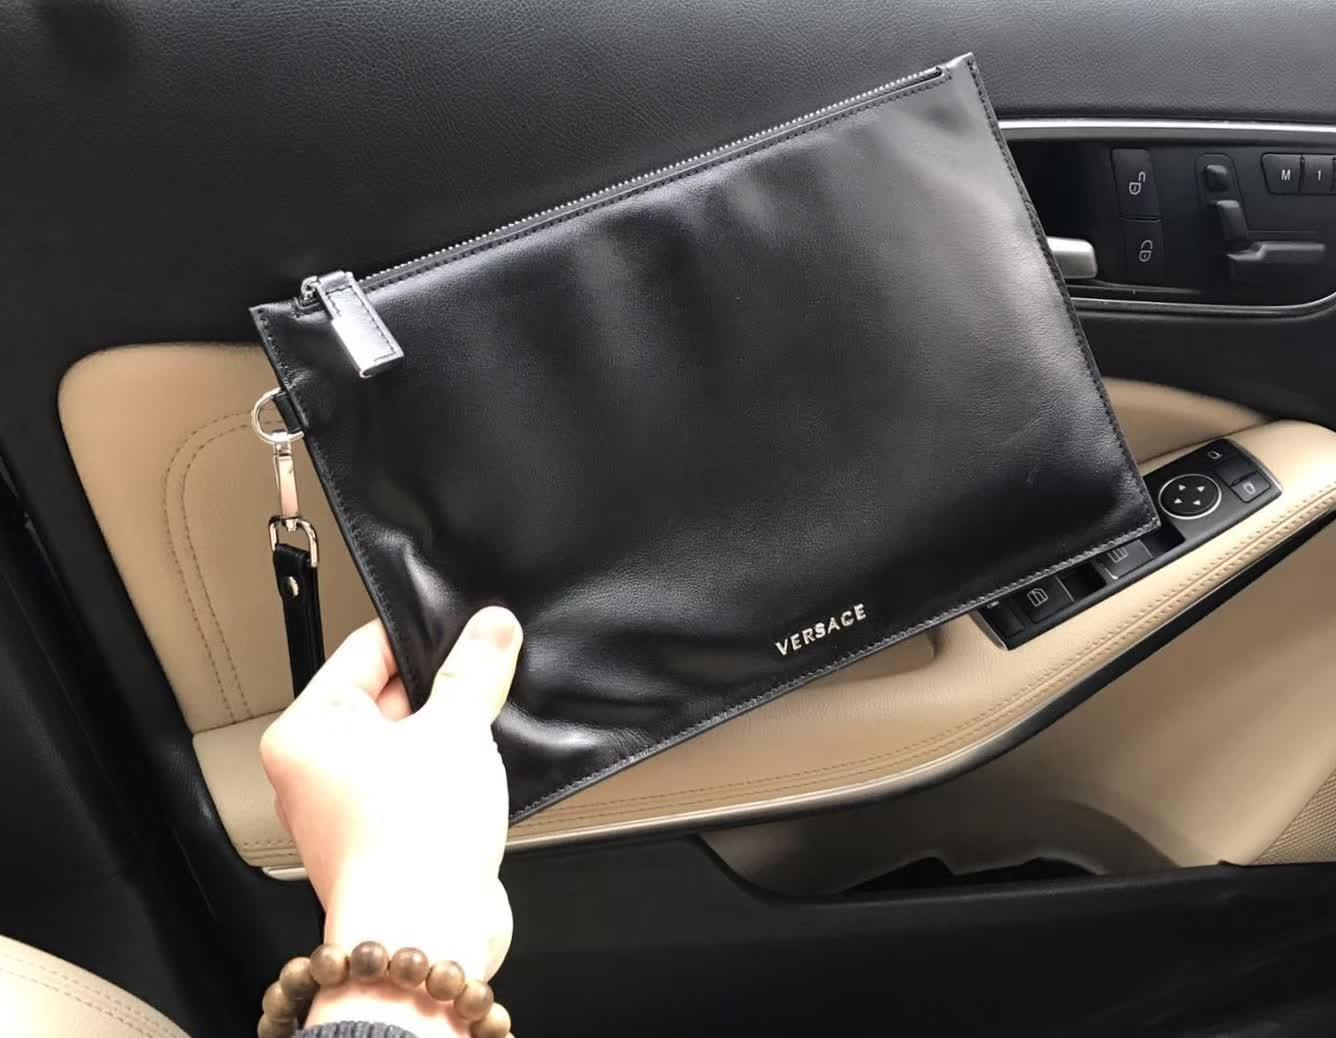 Versace 9005-5 Leather Men Clutch Bag Black